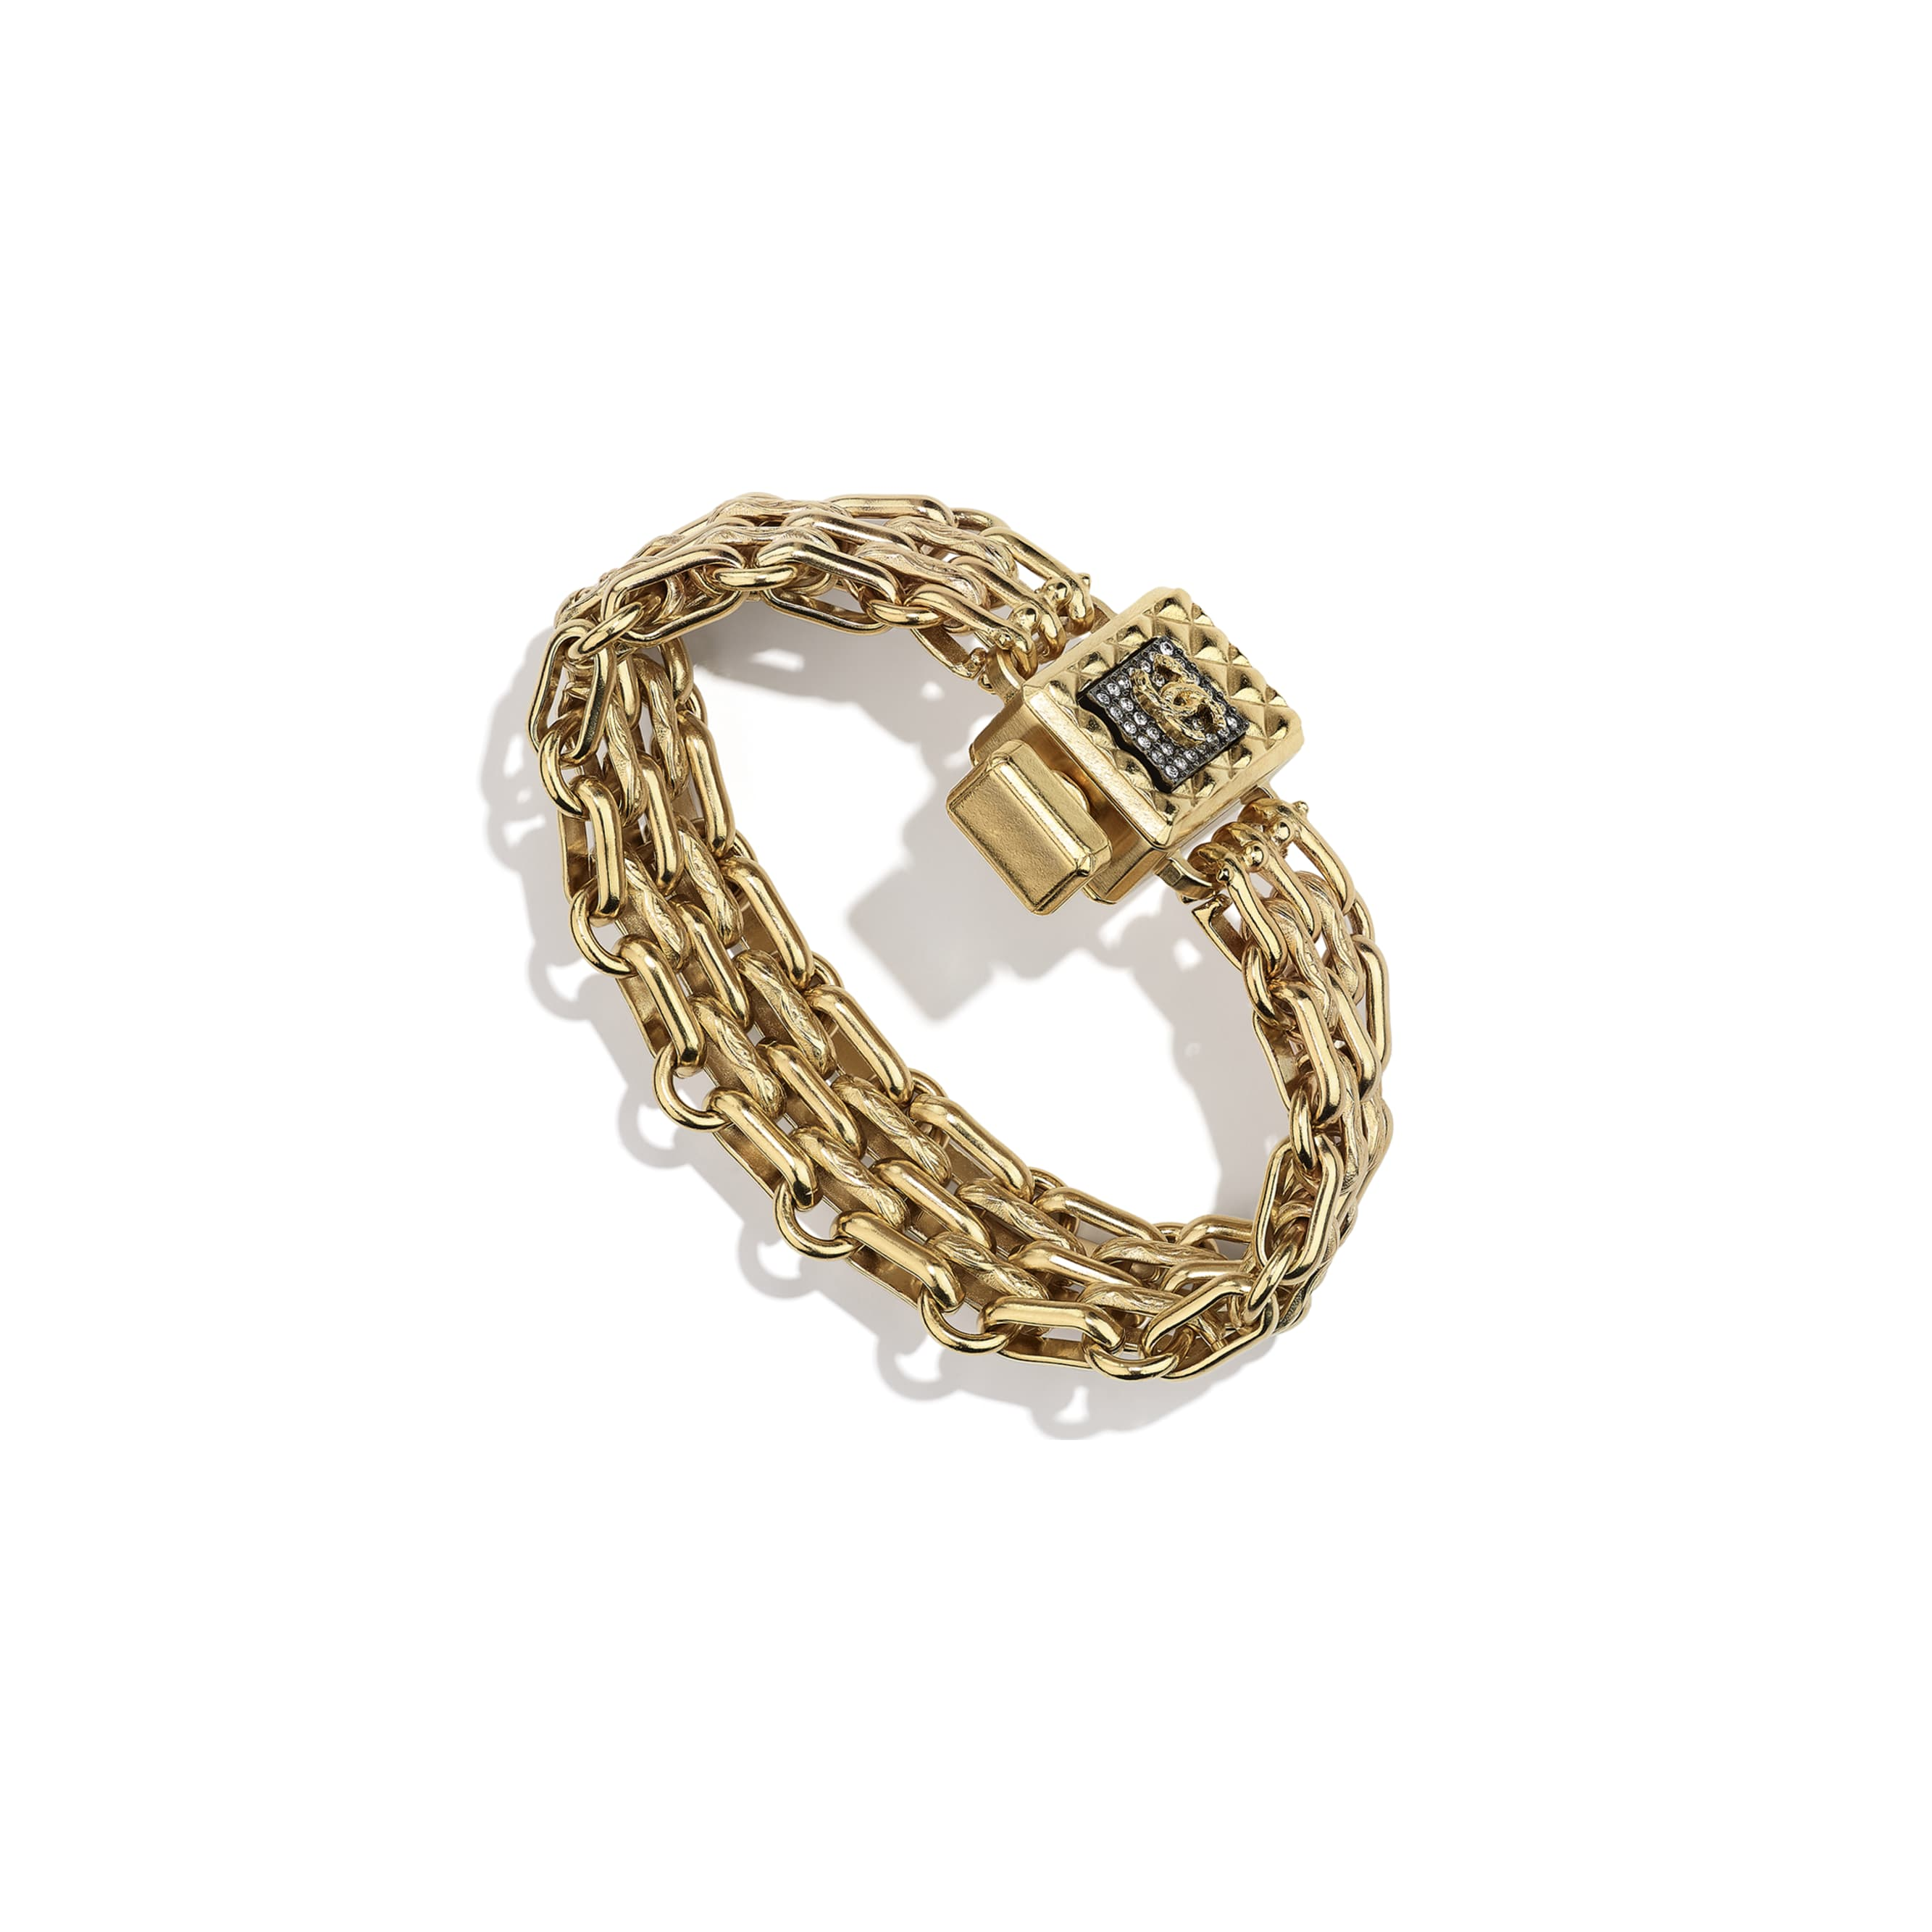 Bracelet - Gold, Ruthenium & Crystal - Metal & Diamantés - CHANEL - Default view - see standard sized version